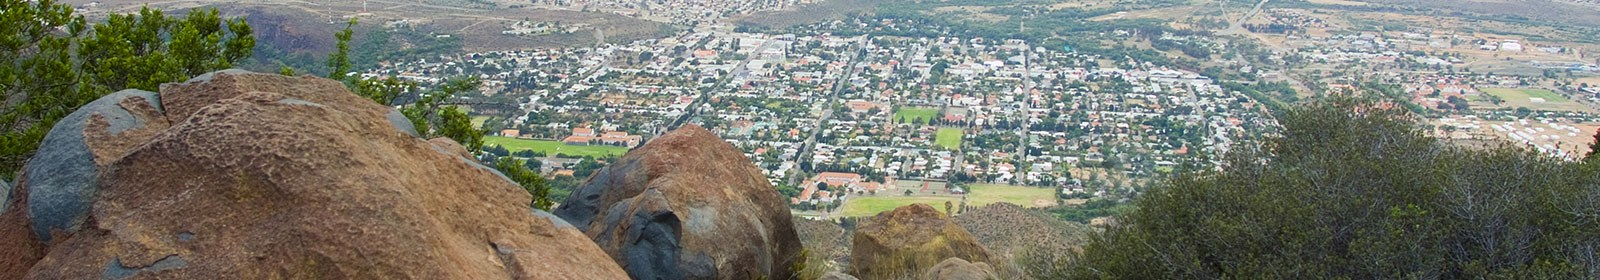 Graaff-Reinet: The crown jewel of the Karoo